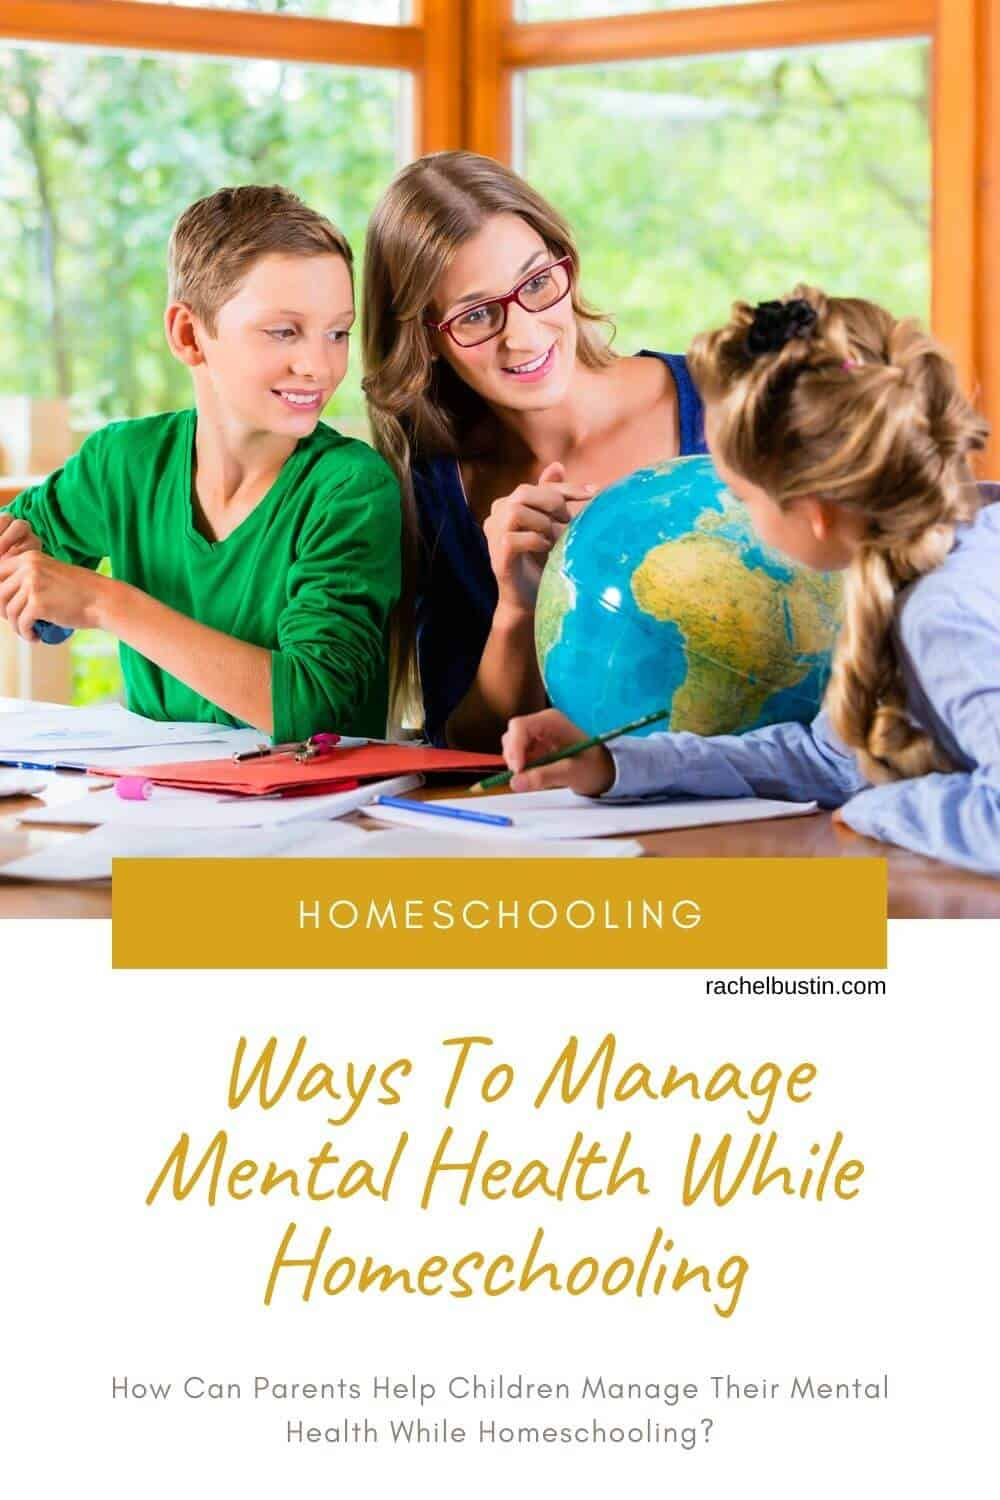 A lack of social exposure for children and the stresses of learning from home will likely have a severe impact on the mental wellbeing of thousands of children in Britain. These longer periods of time is hard on everyone's mental health. So I thought I would share some ideas on how parents can help their children manage their mental health while homeschooling.